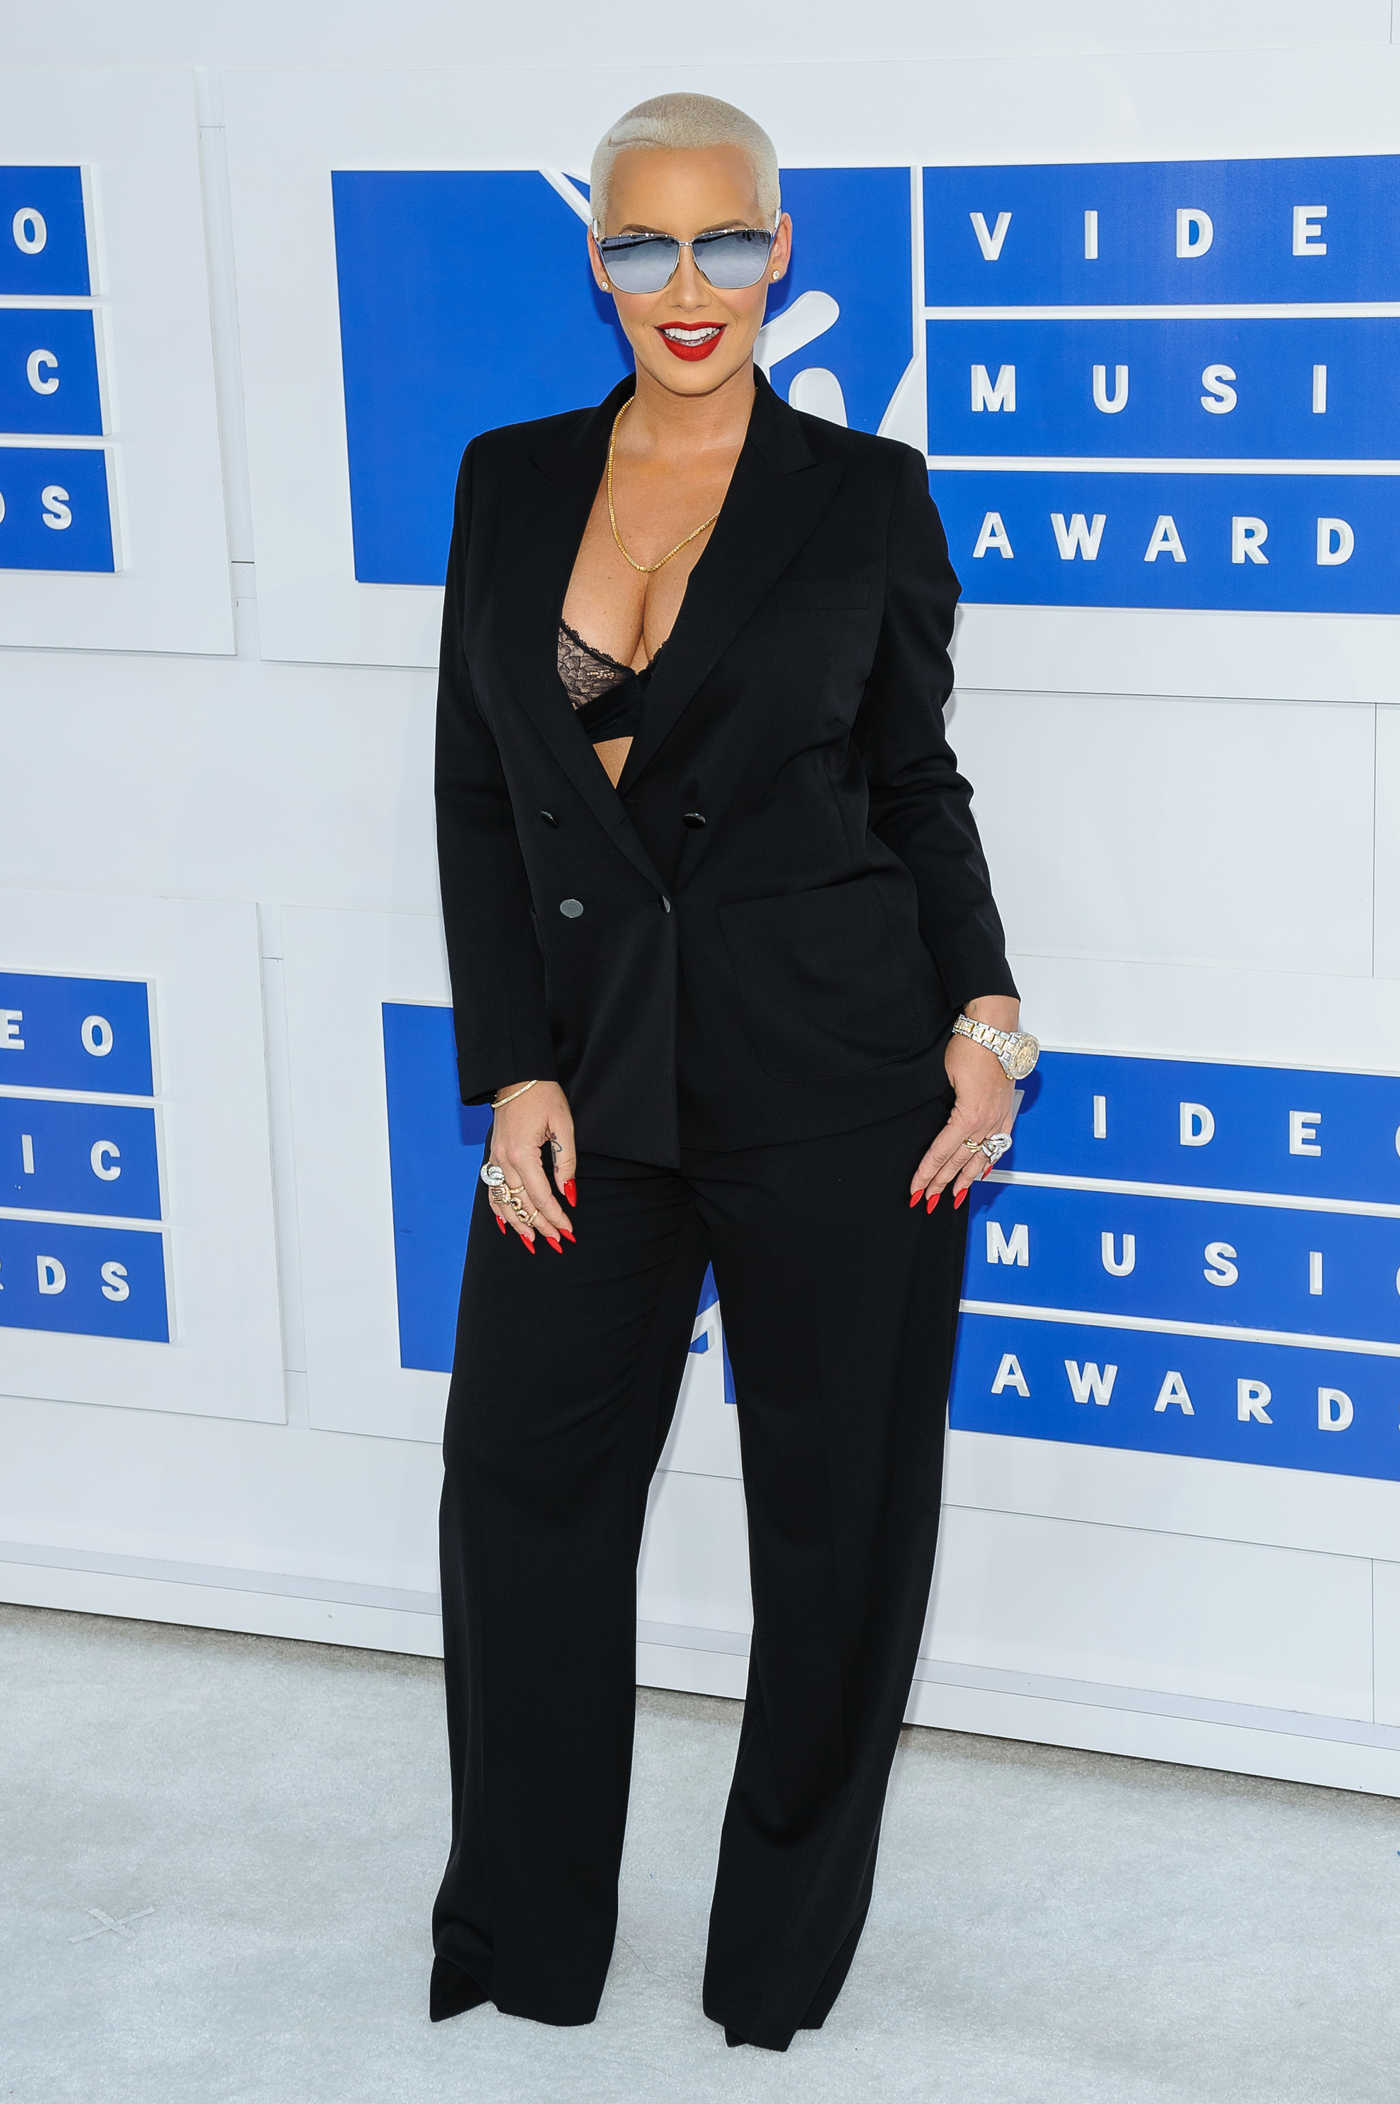 Amber Rose at 2016 MTV Video Music Awards at Madison Square Garden in New York 08/28/2016